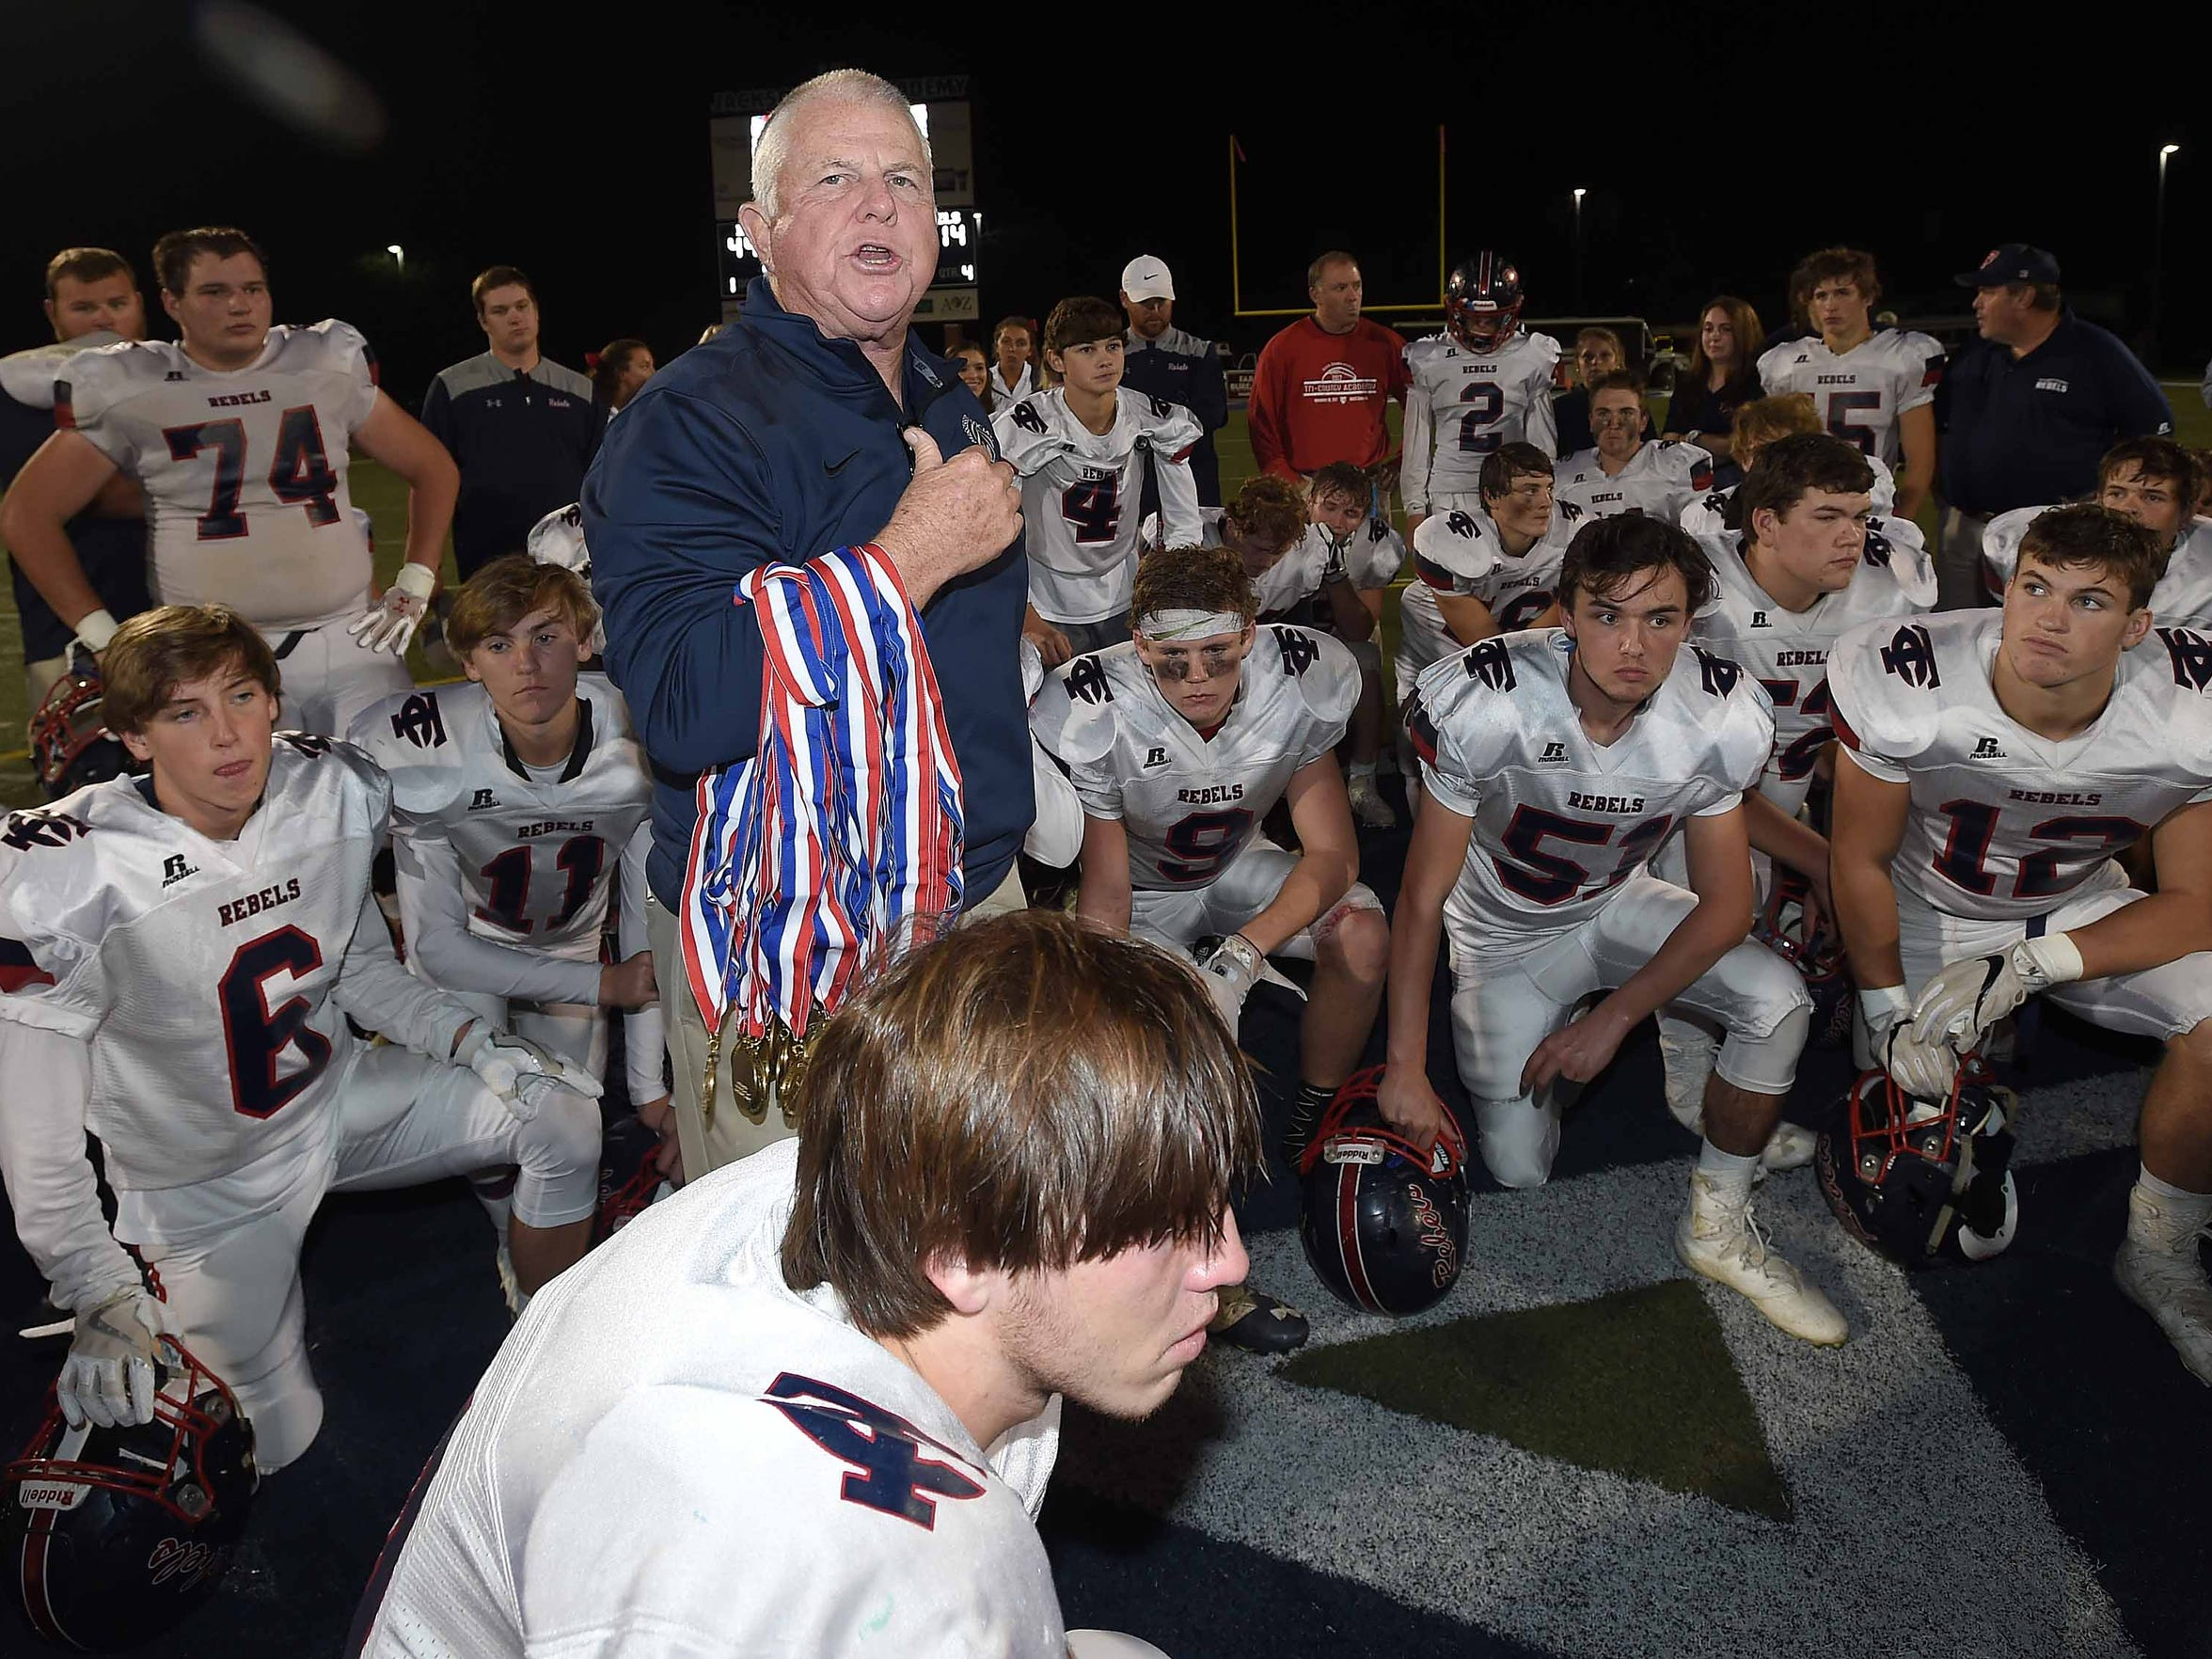 Les Triplett with the Mississippi Association of Independent Schools prepares to lead the teams in the Fellowship of Christian Athletes prayer after the game on Thursday, November 16, 2017, in the MAIS State Football Championships at Jackson Academy in Jackson, Miss.